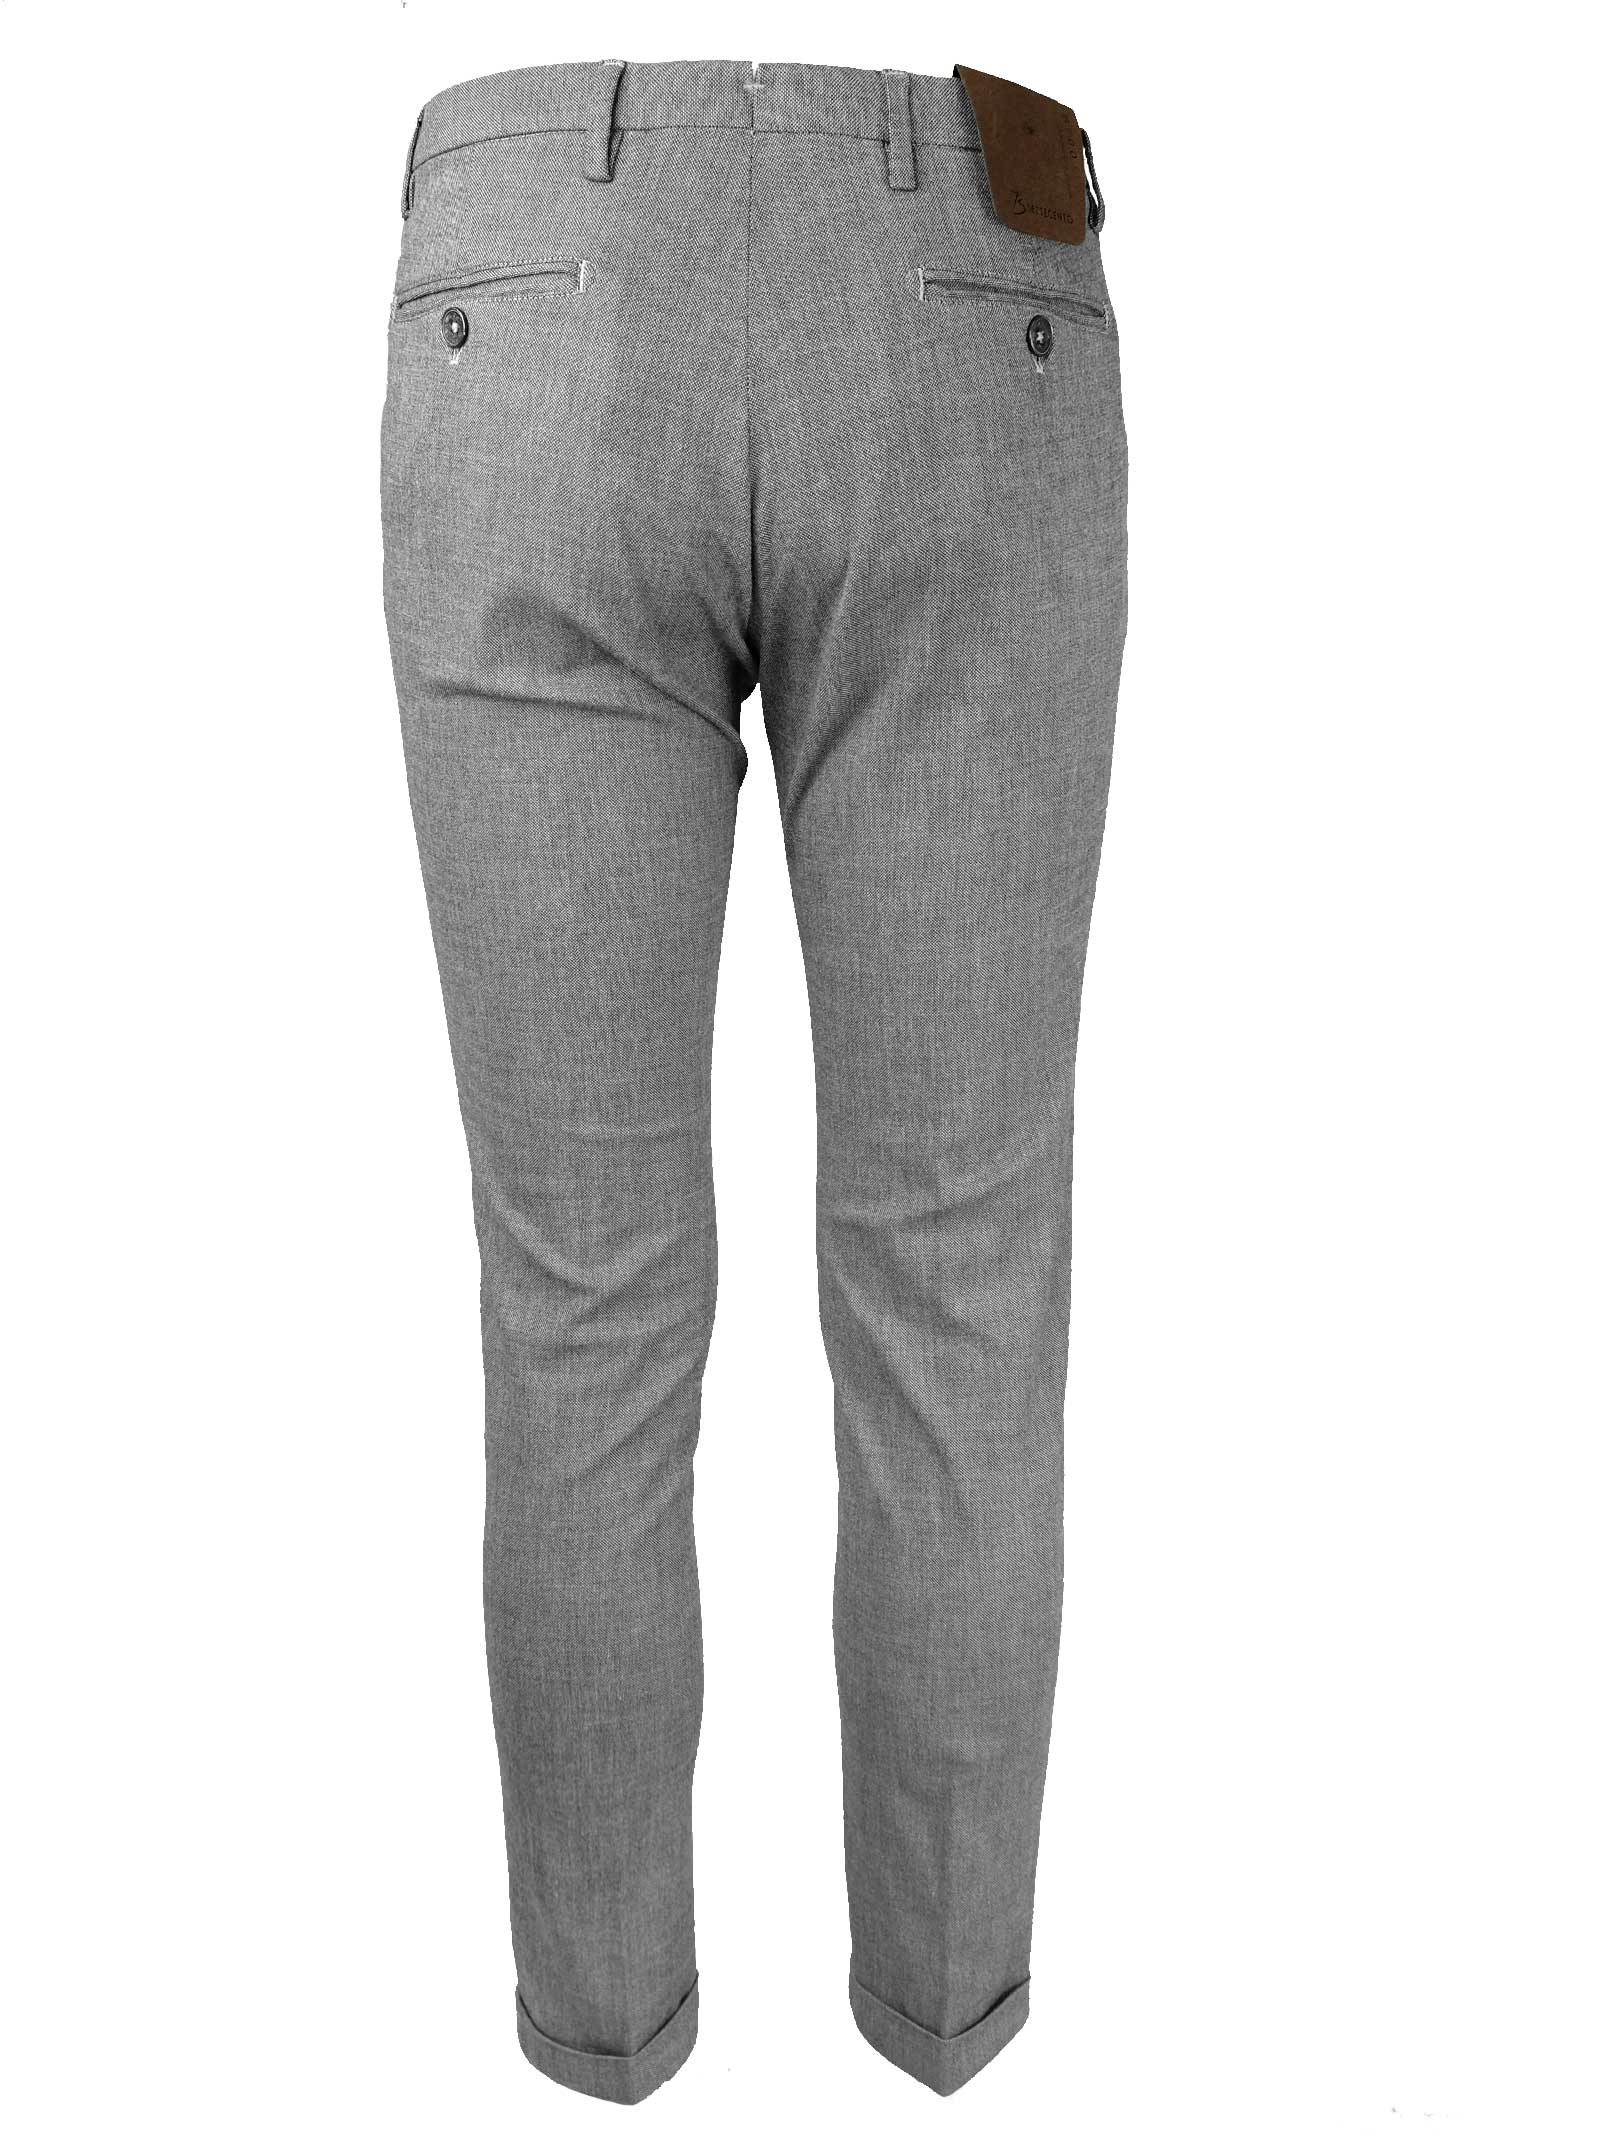 B700 | Trousers | MH700 855903